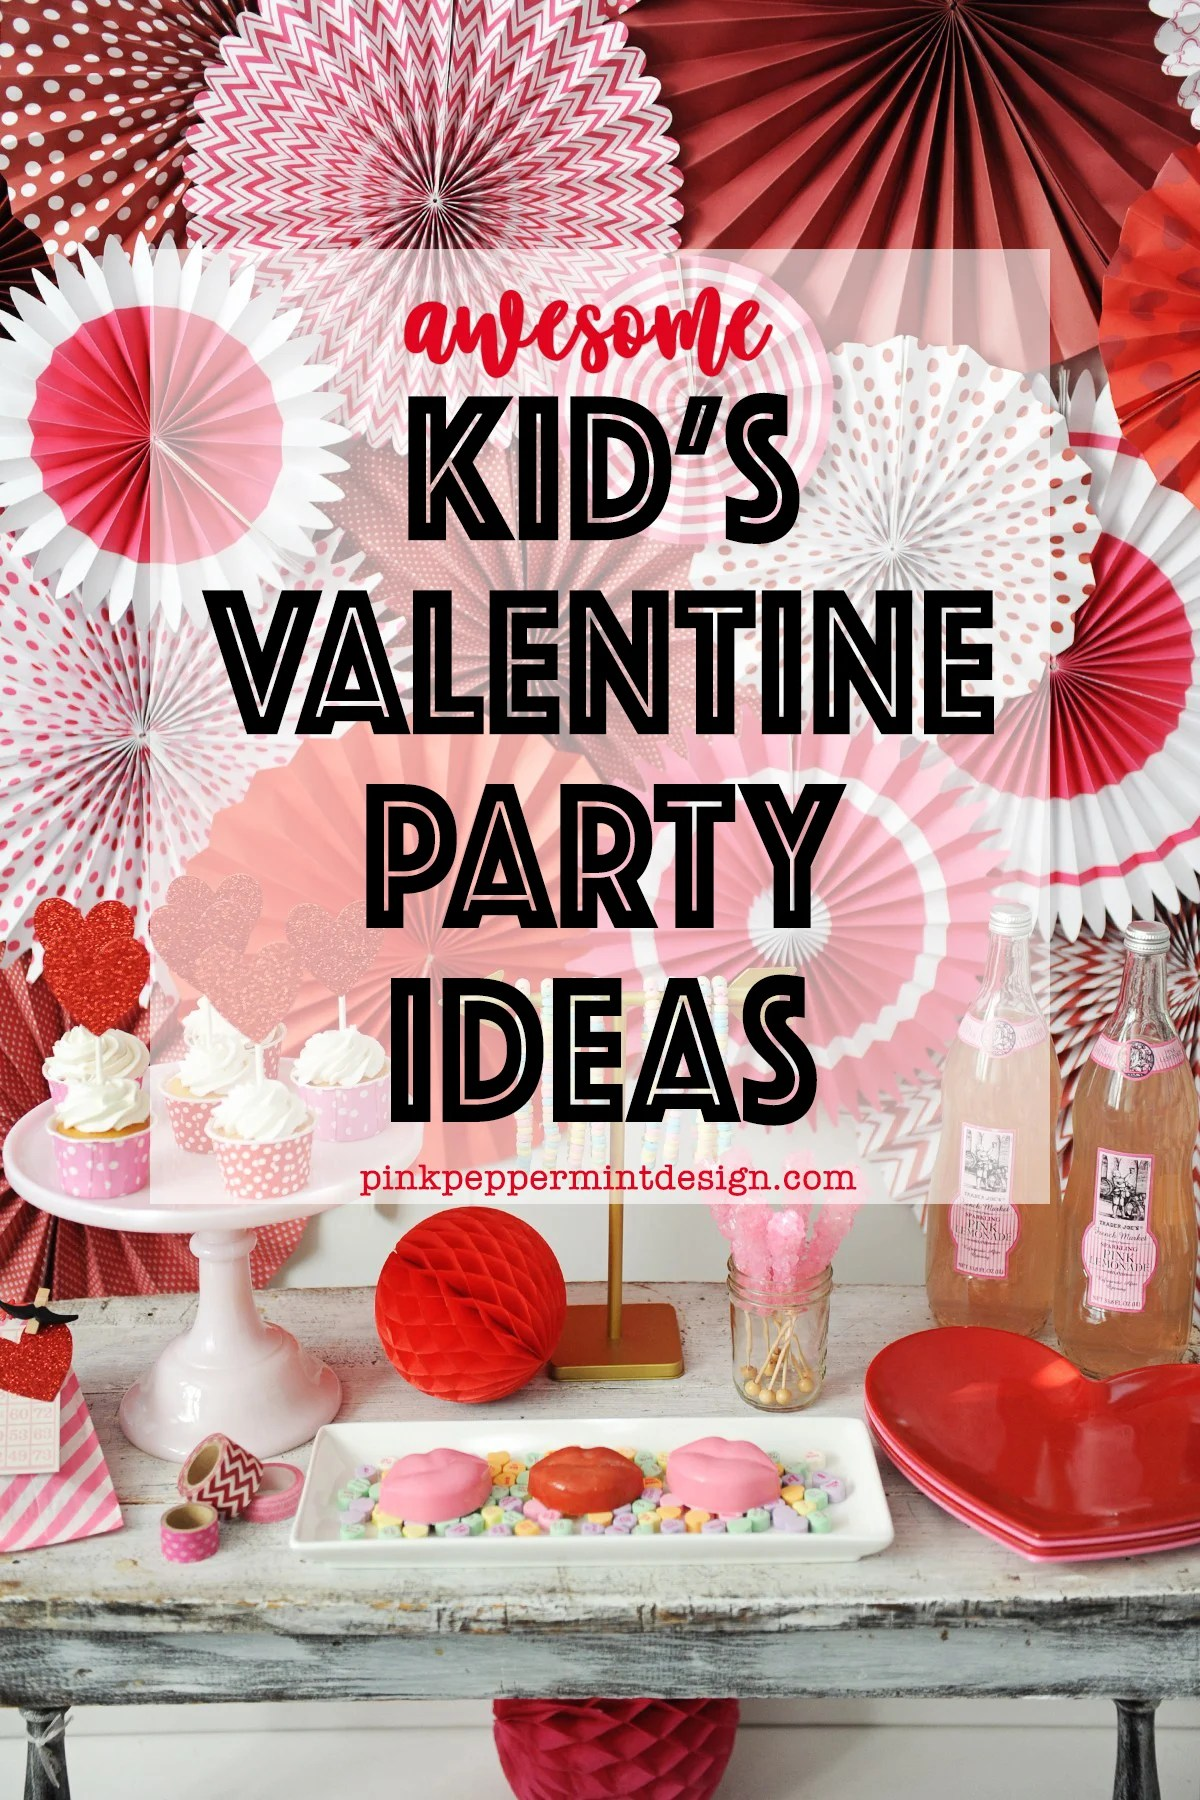 Awesome kids valentine party ideas